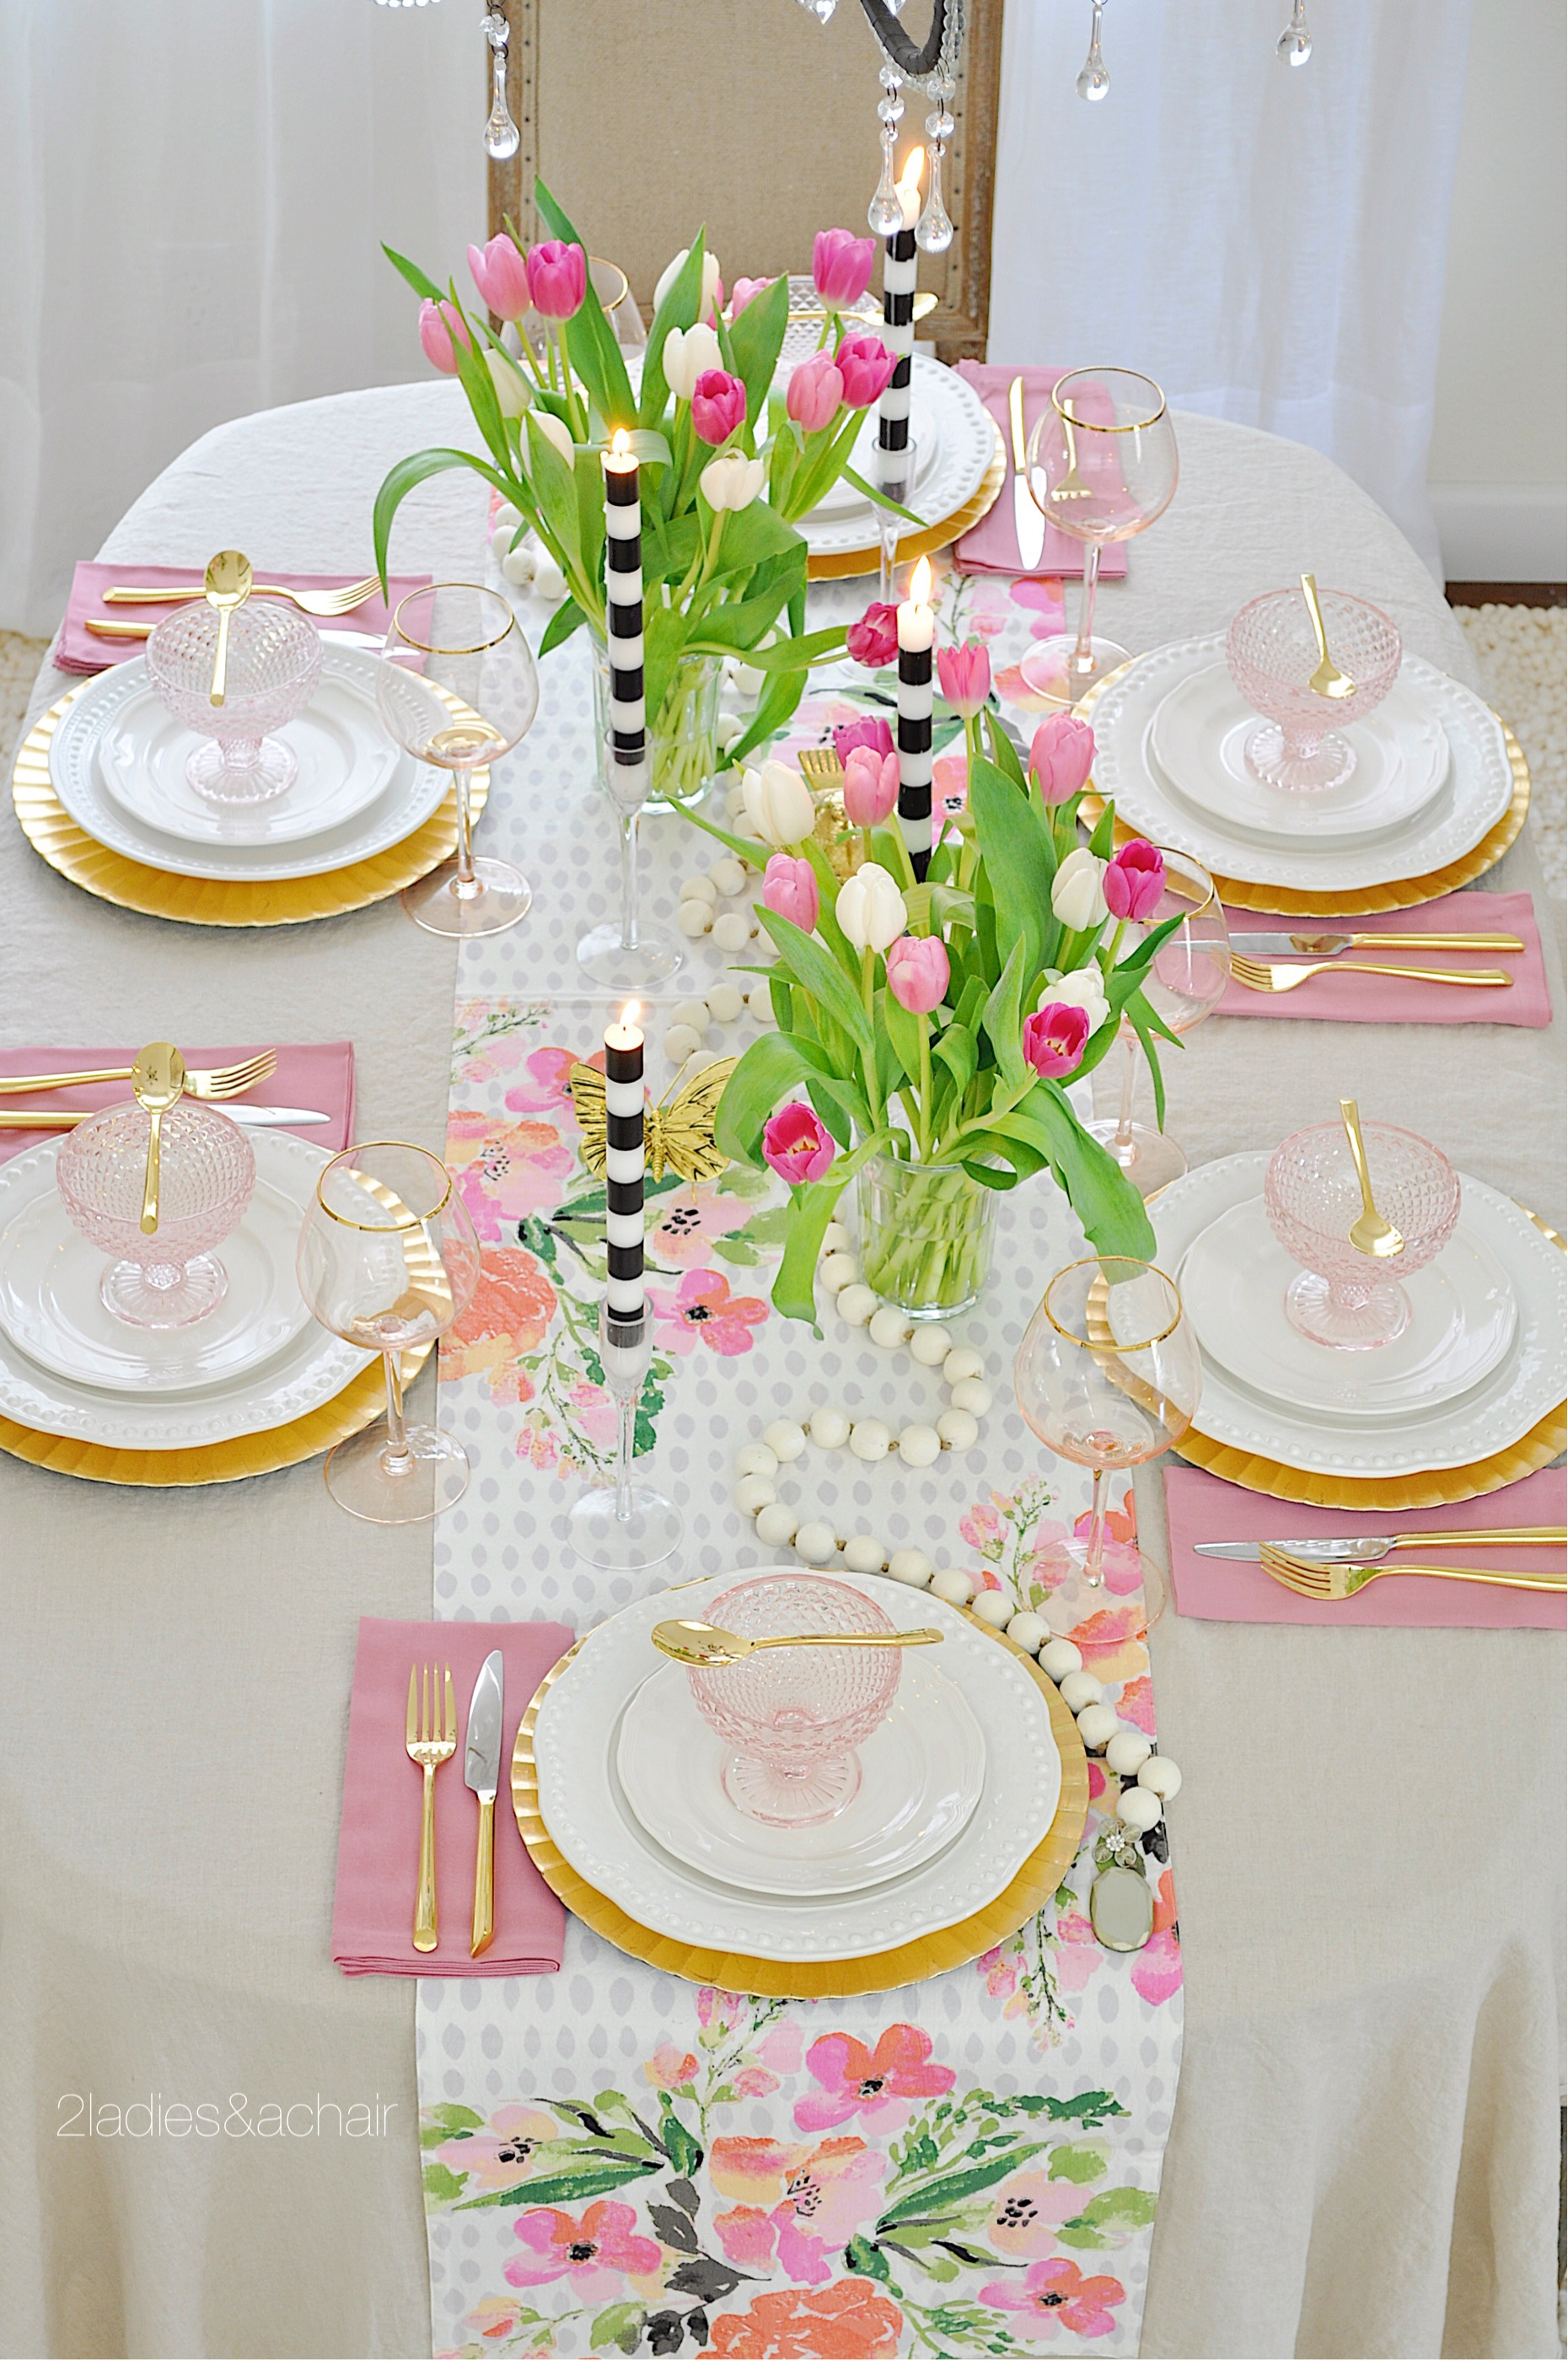 spring tablescape decor IMG_1935.JPG